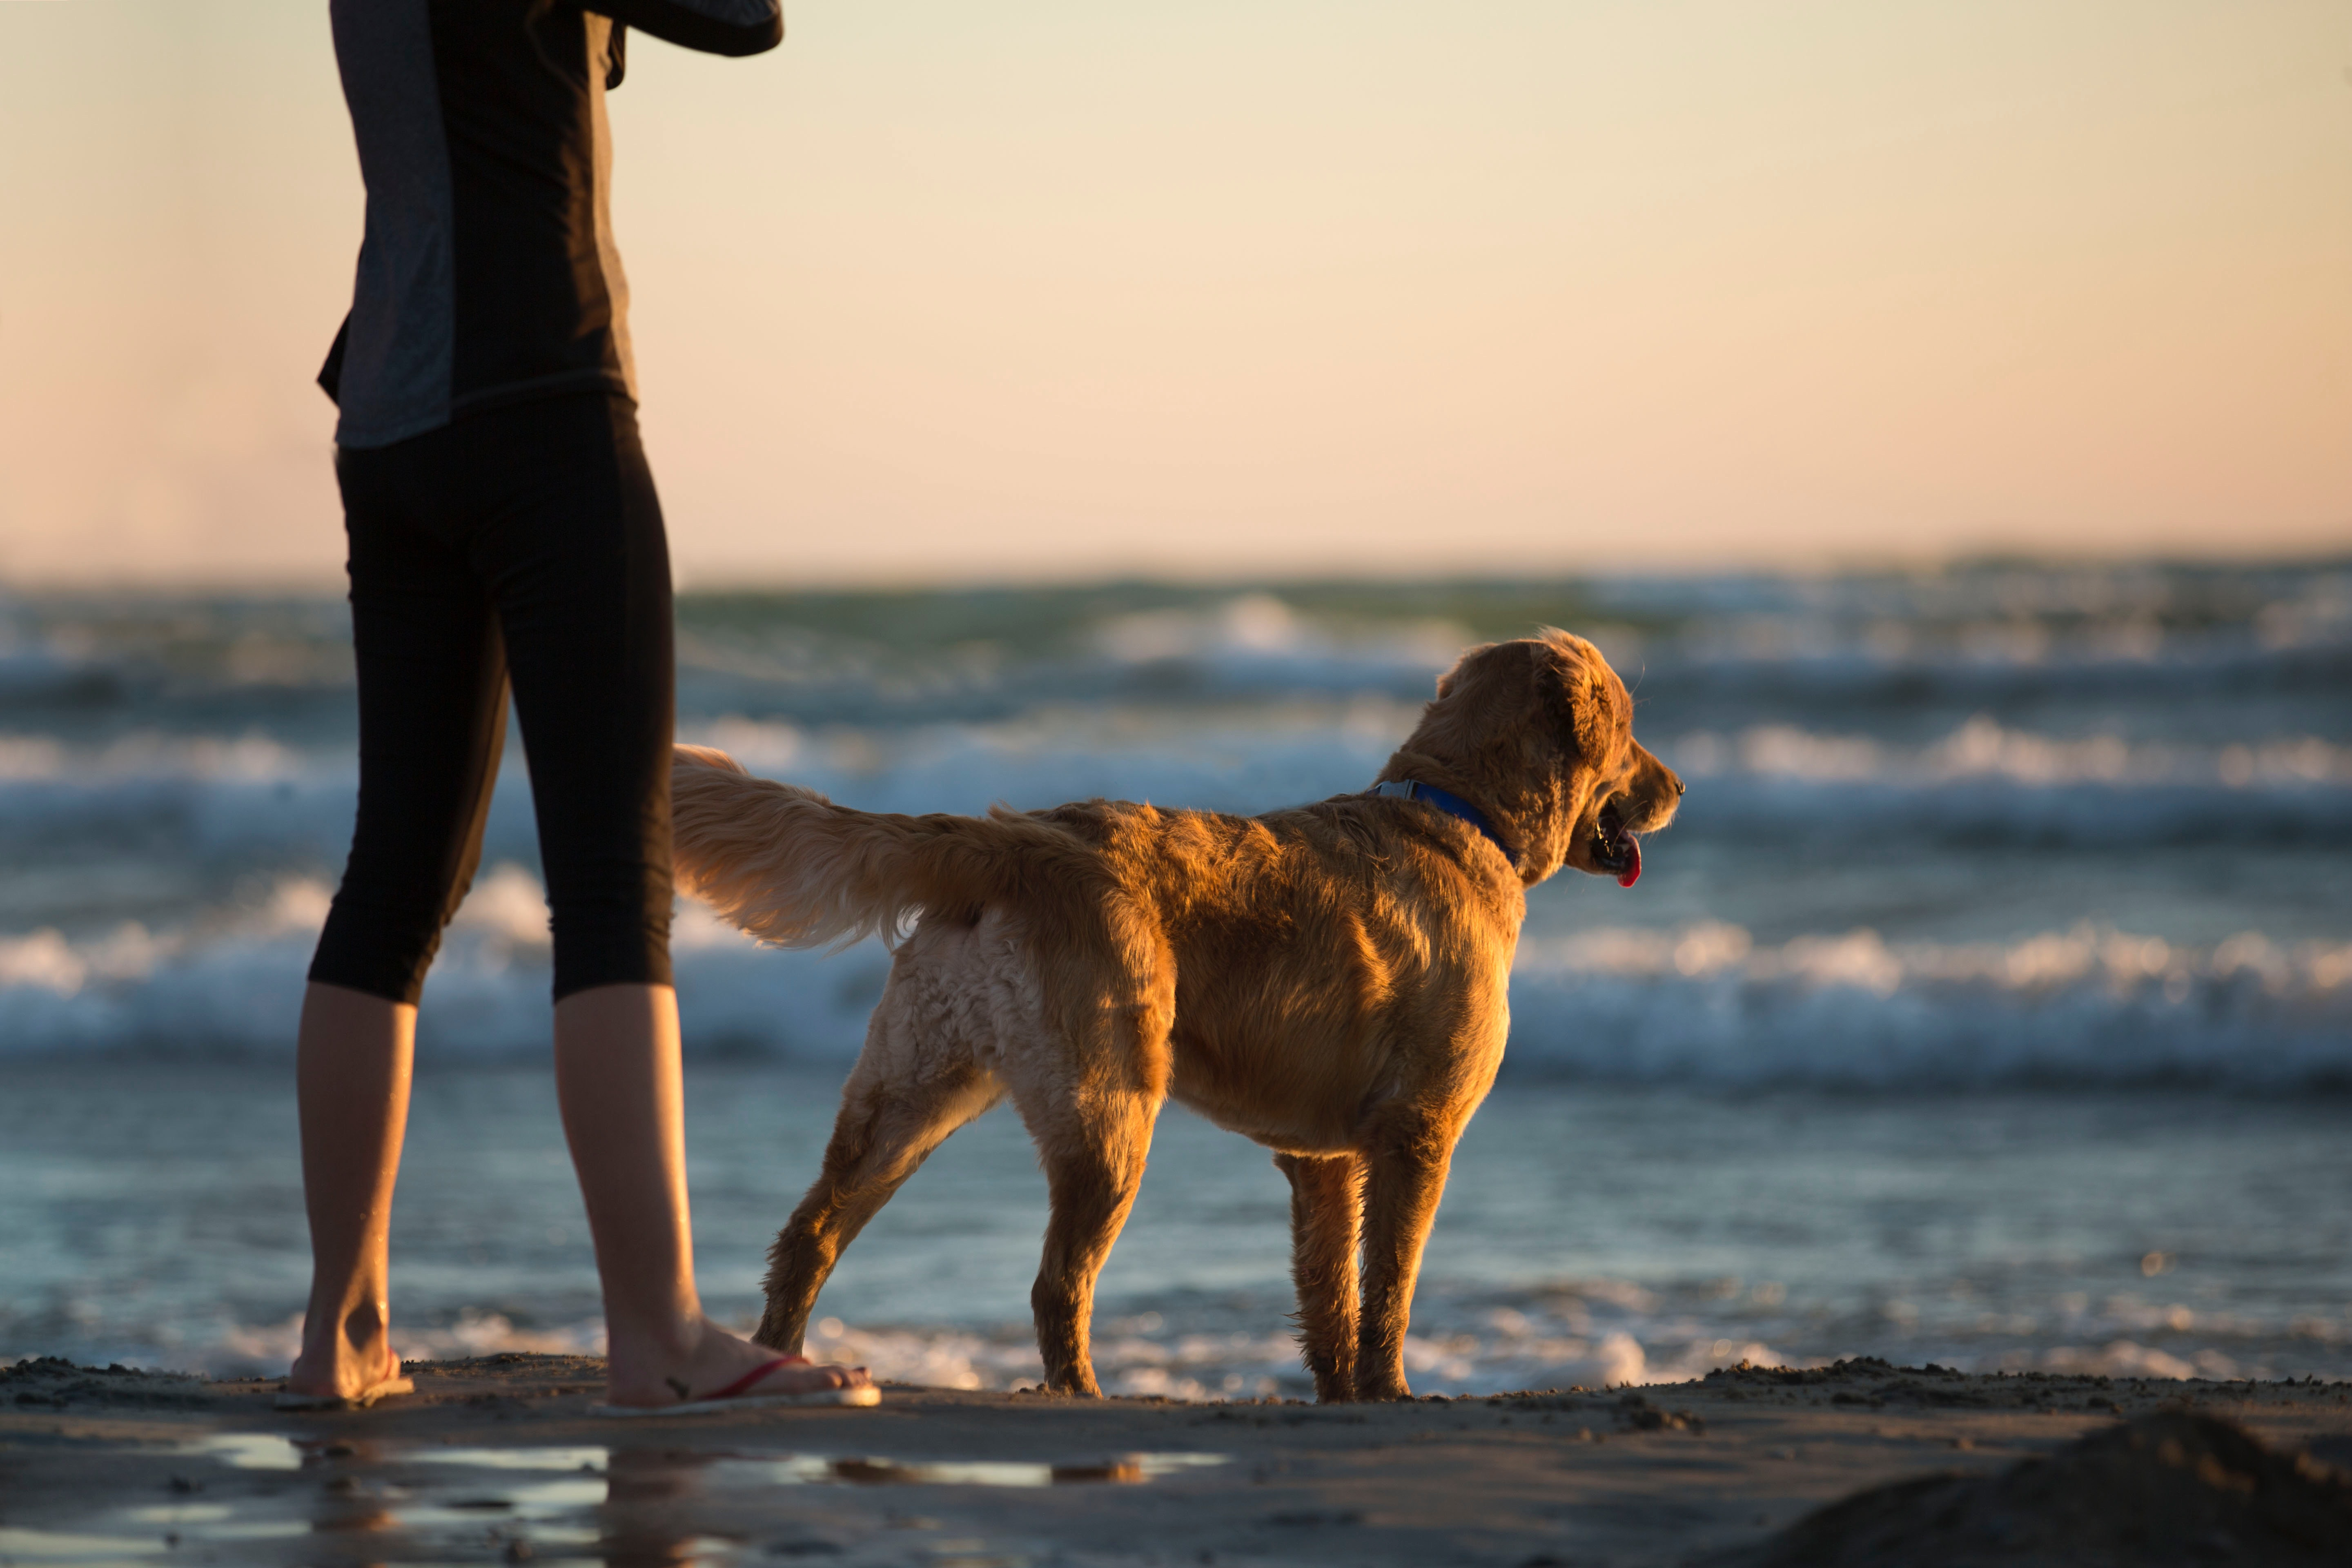 pet-friendly things to do camden maine - dog-friendly parks and beaches